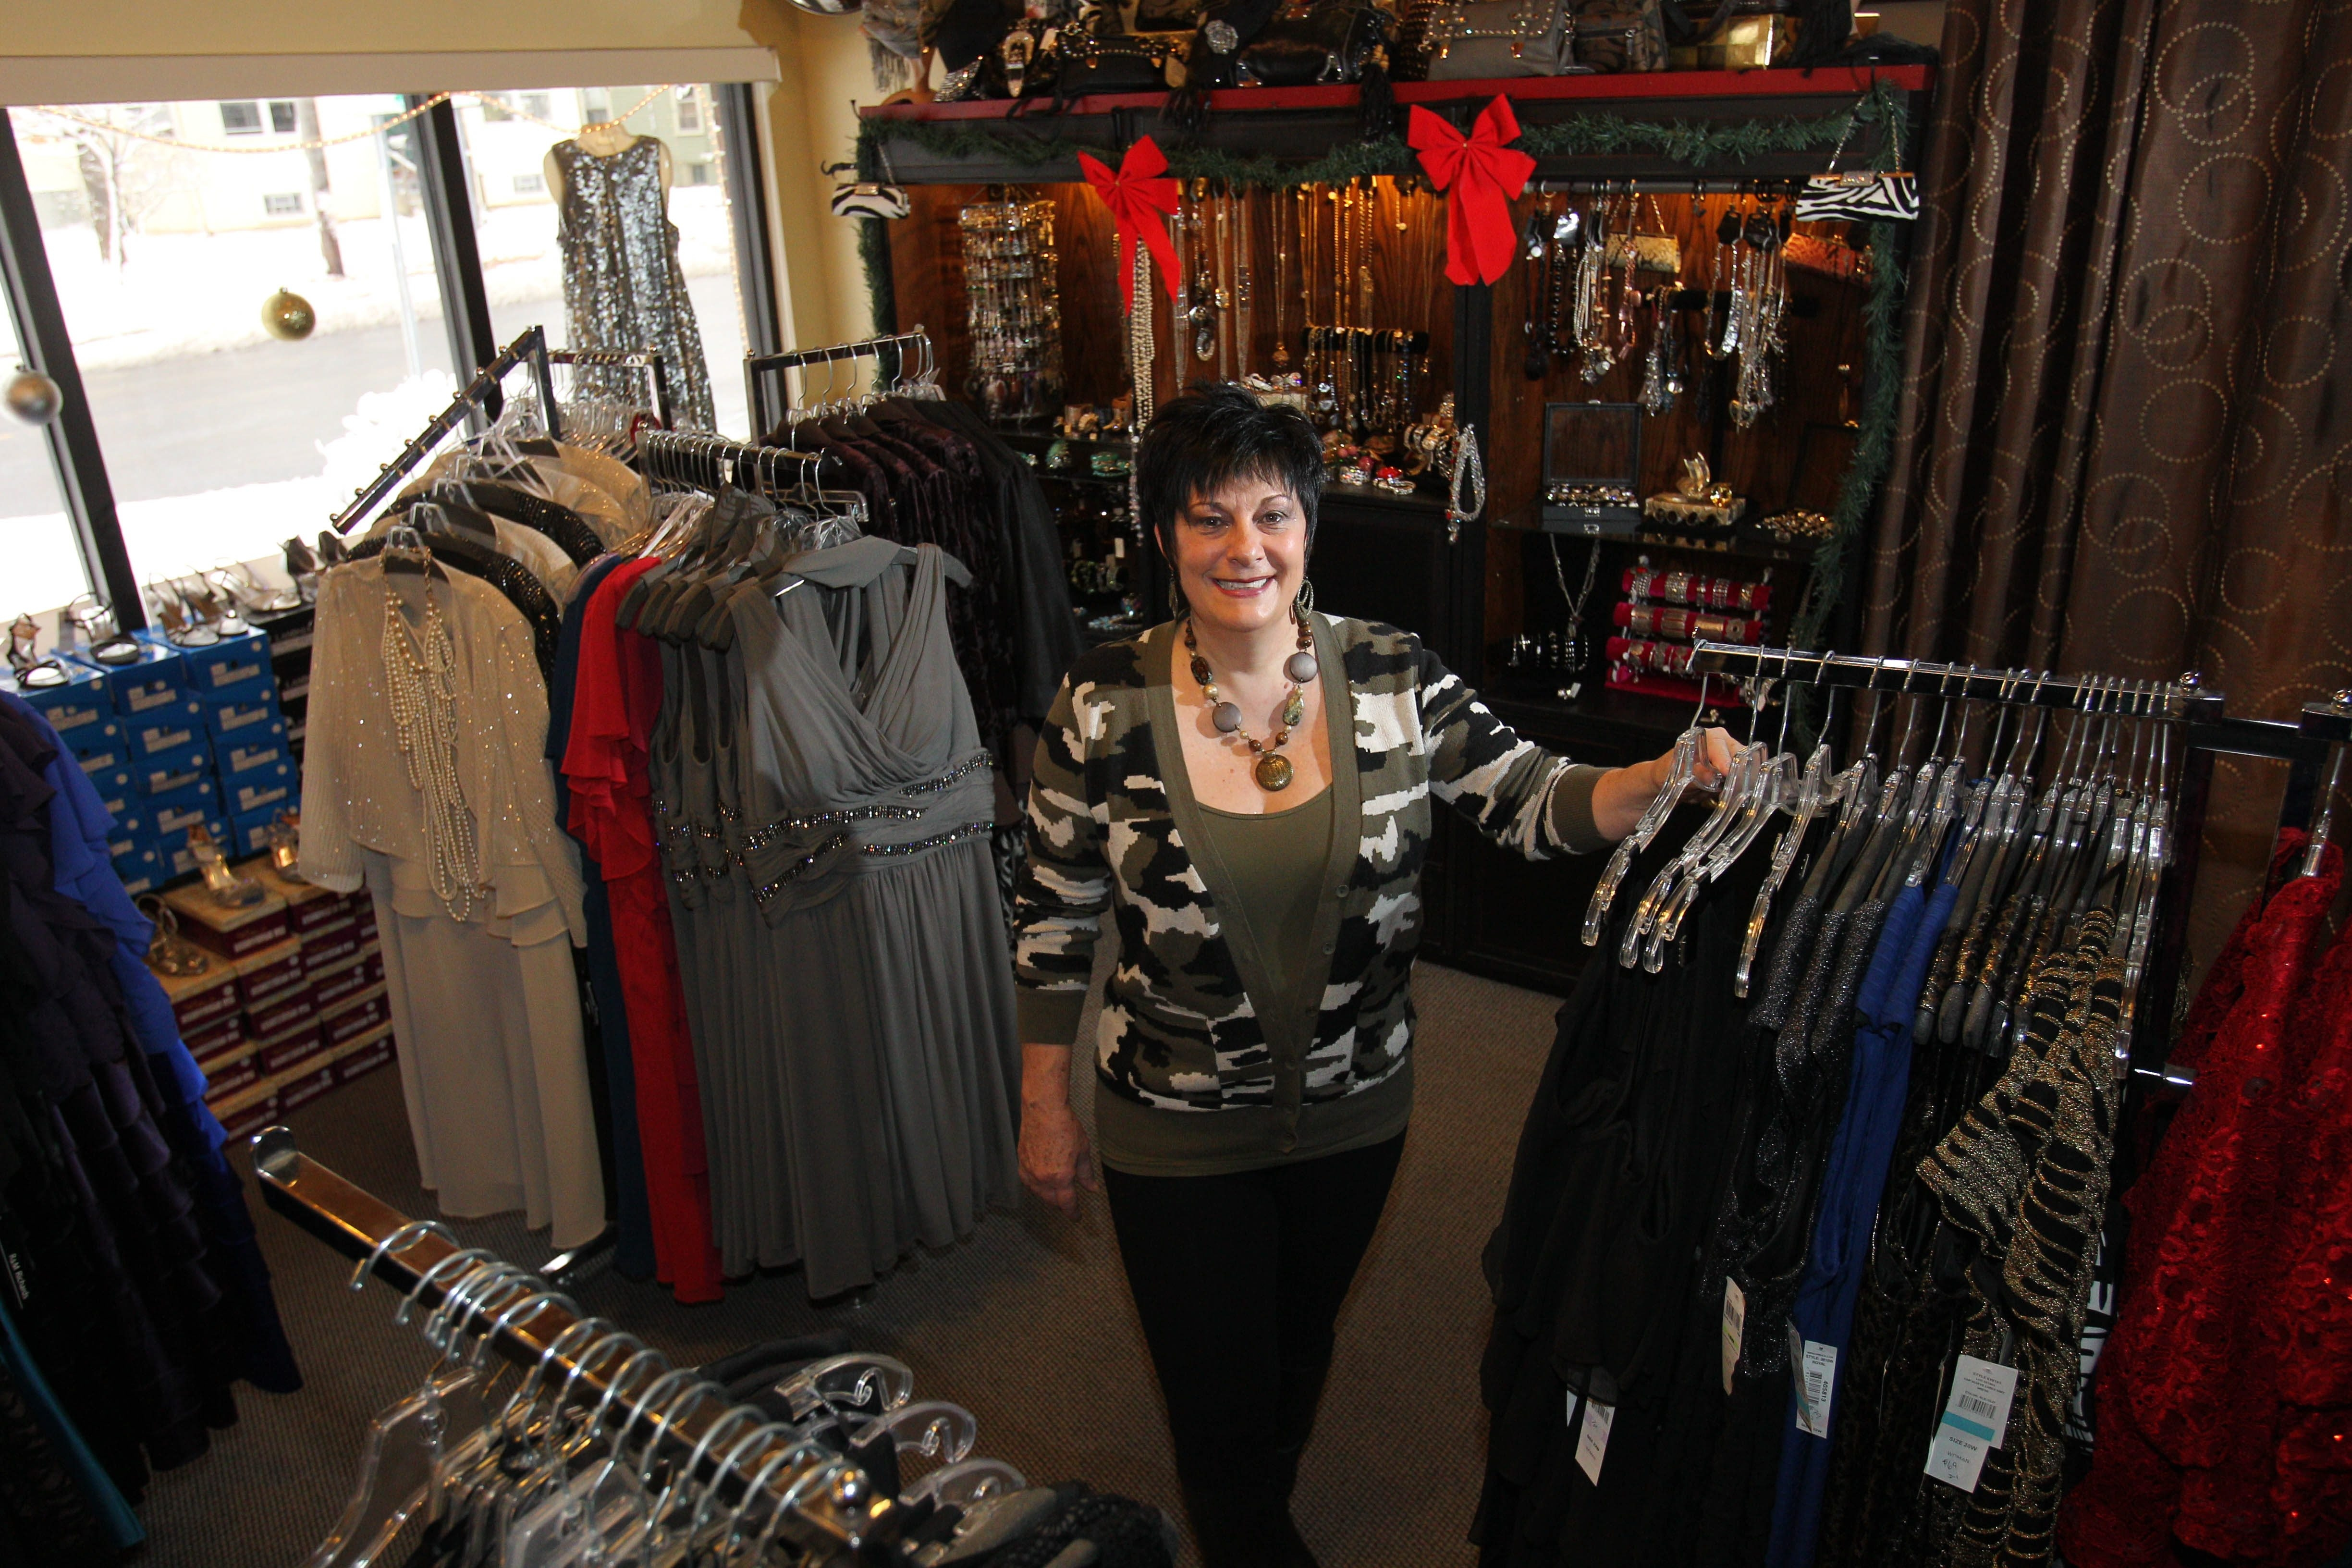 Monroe, owner of Monroe's Place, a women's clothing boutique on Lake Street in Hamburg, is participating in Small Business Saturday along with many other small businesses.